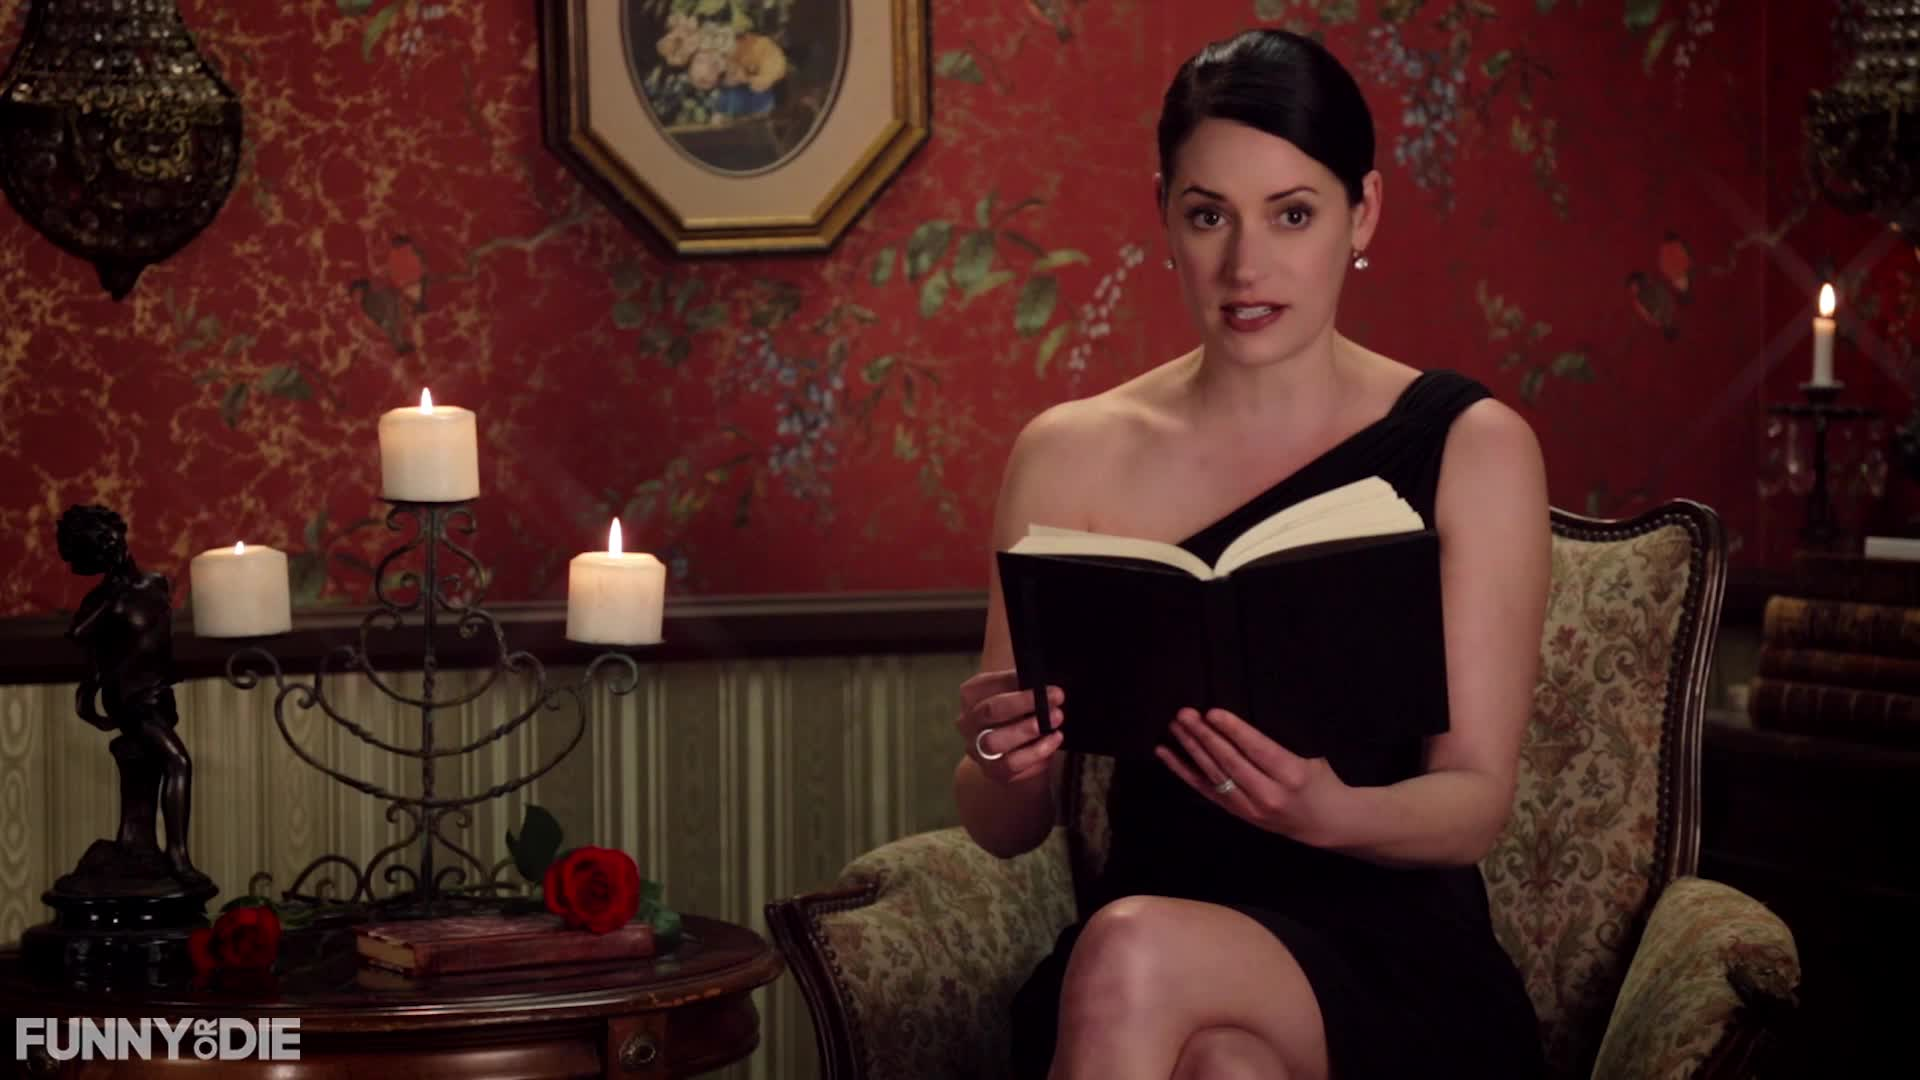 Paget Brewster Widescreen